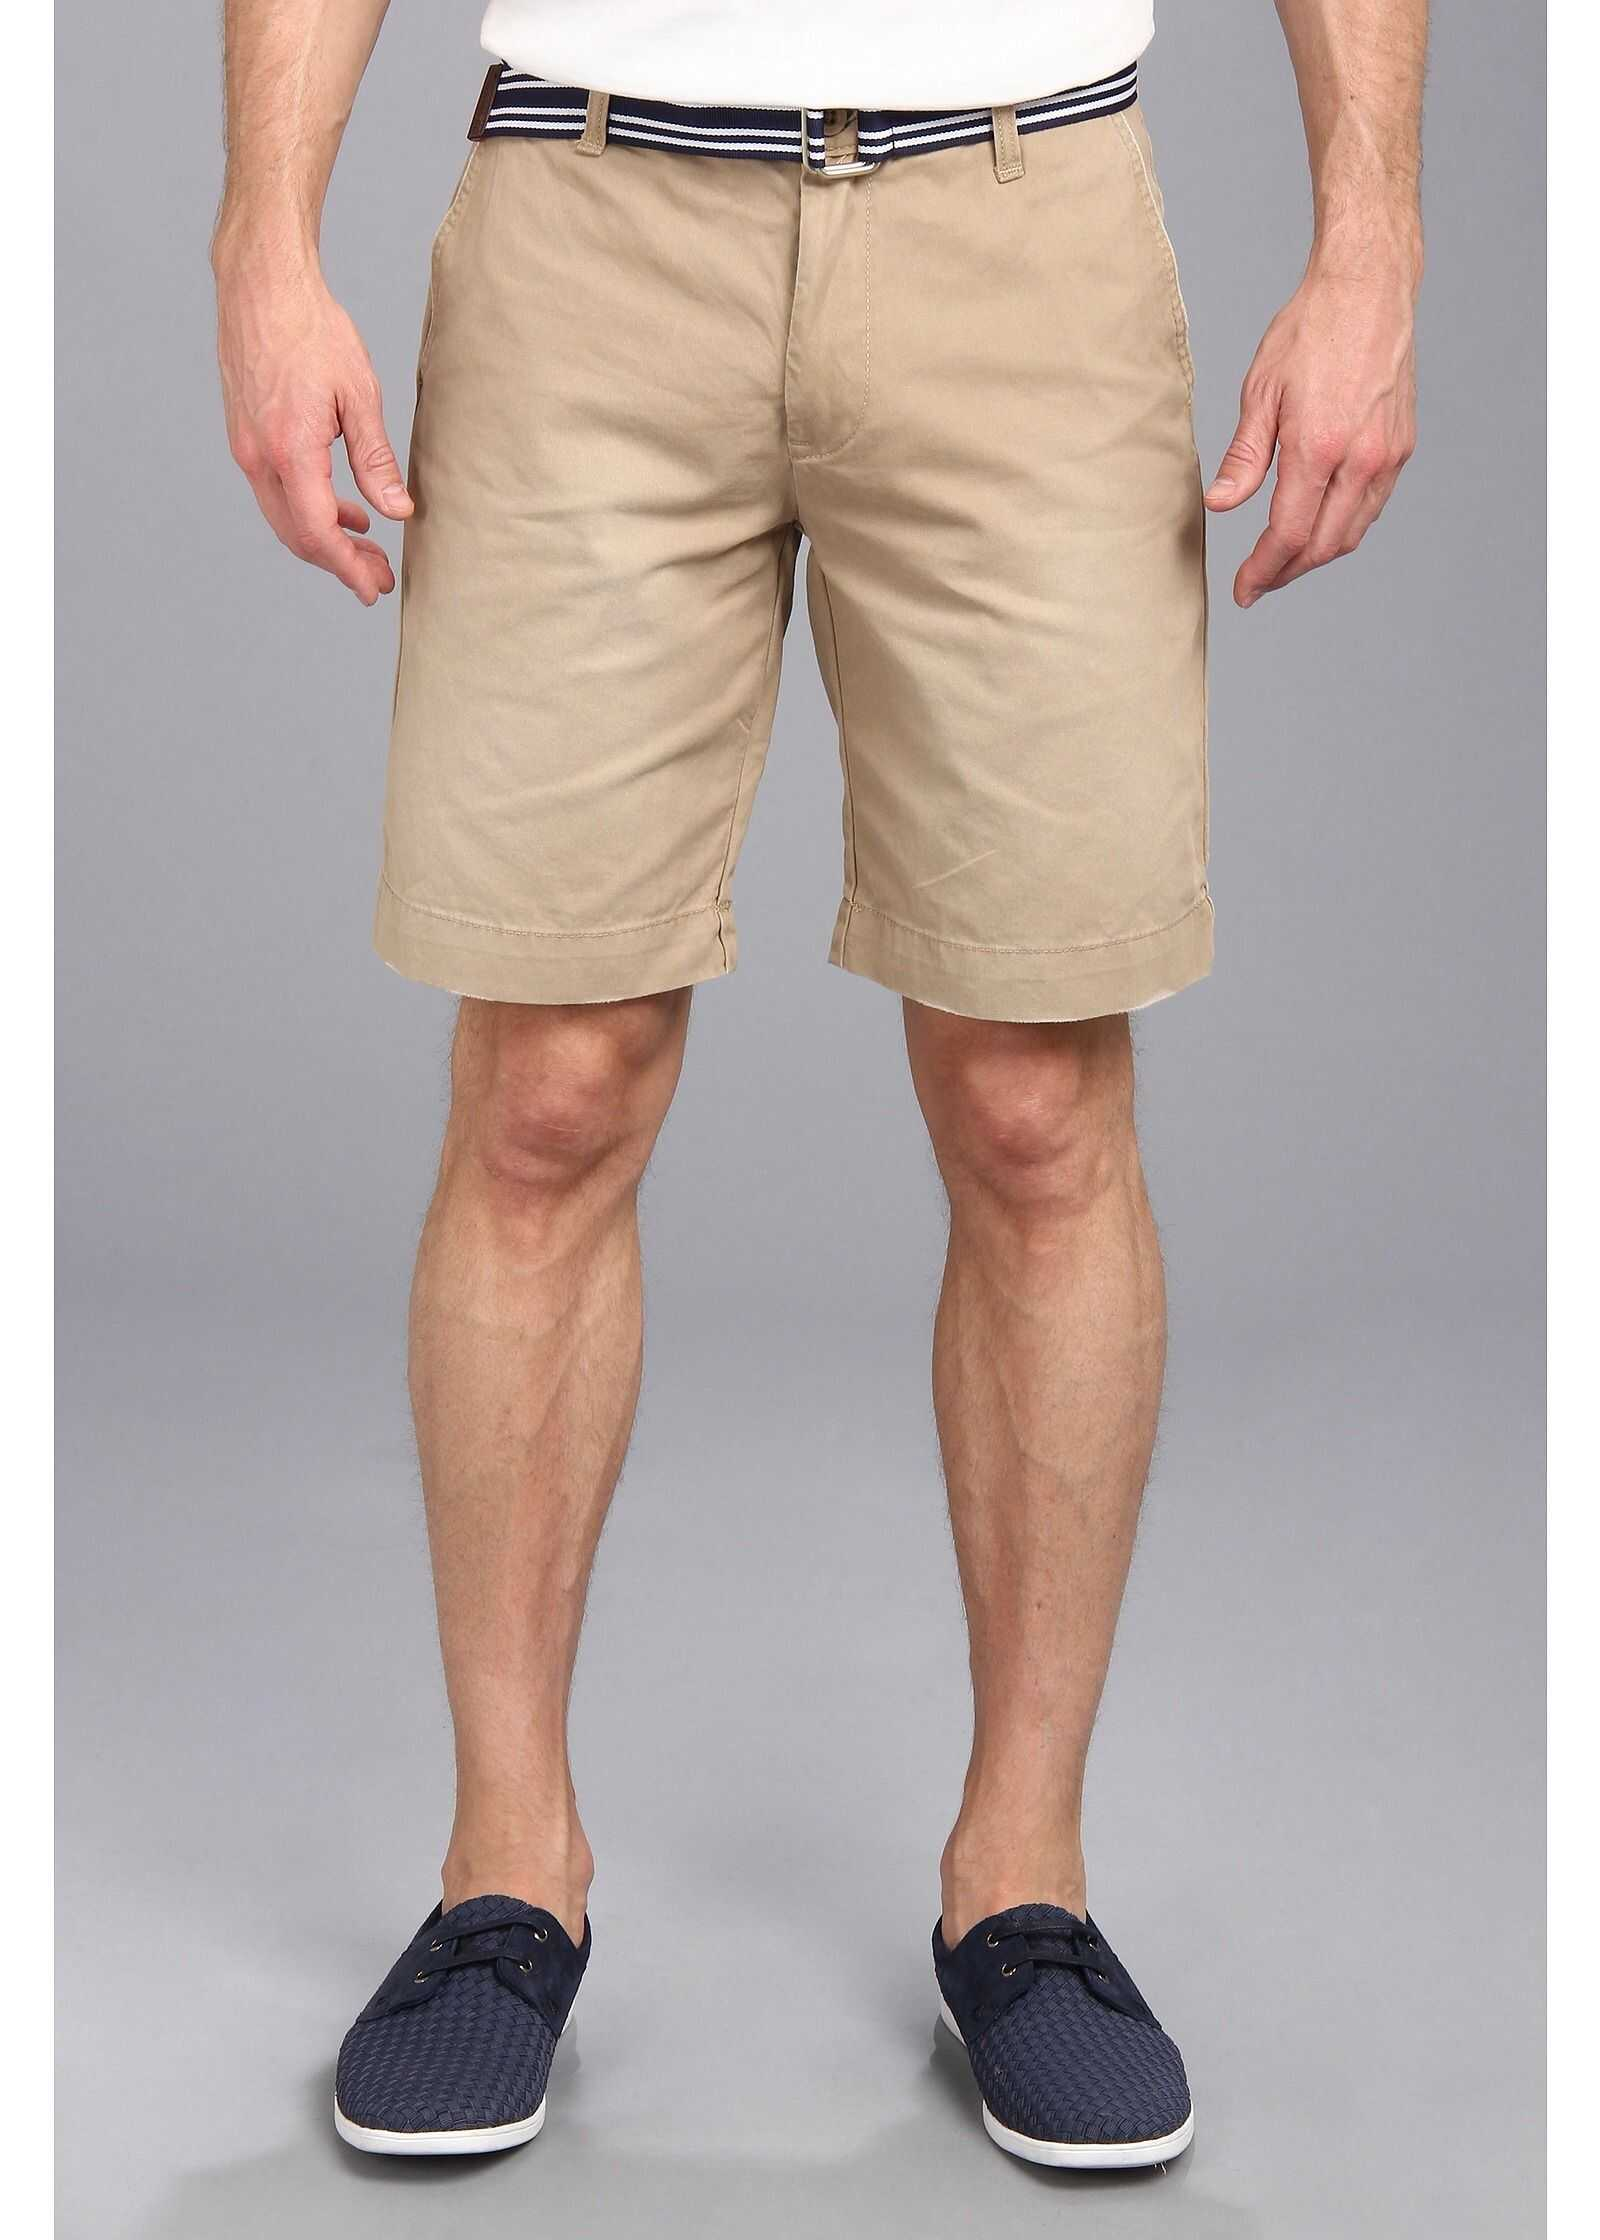 Pantaloni Scurti Barbati U.s. Polo Assn. Hartford